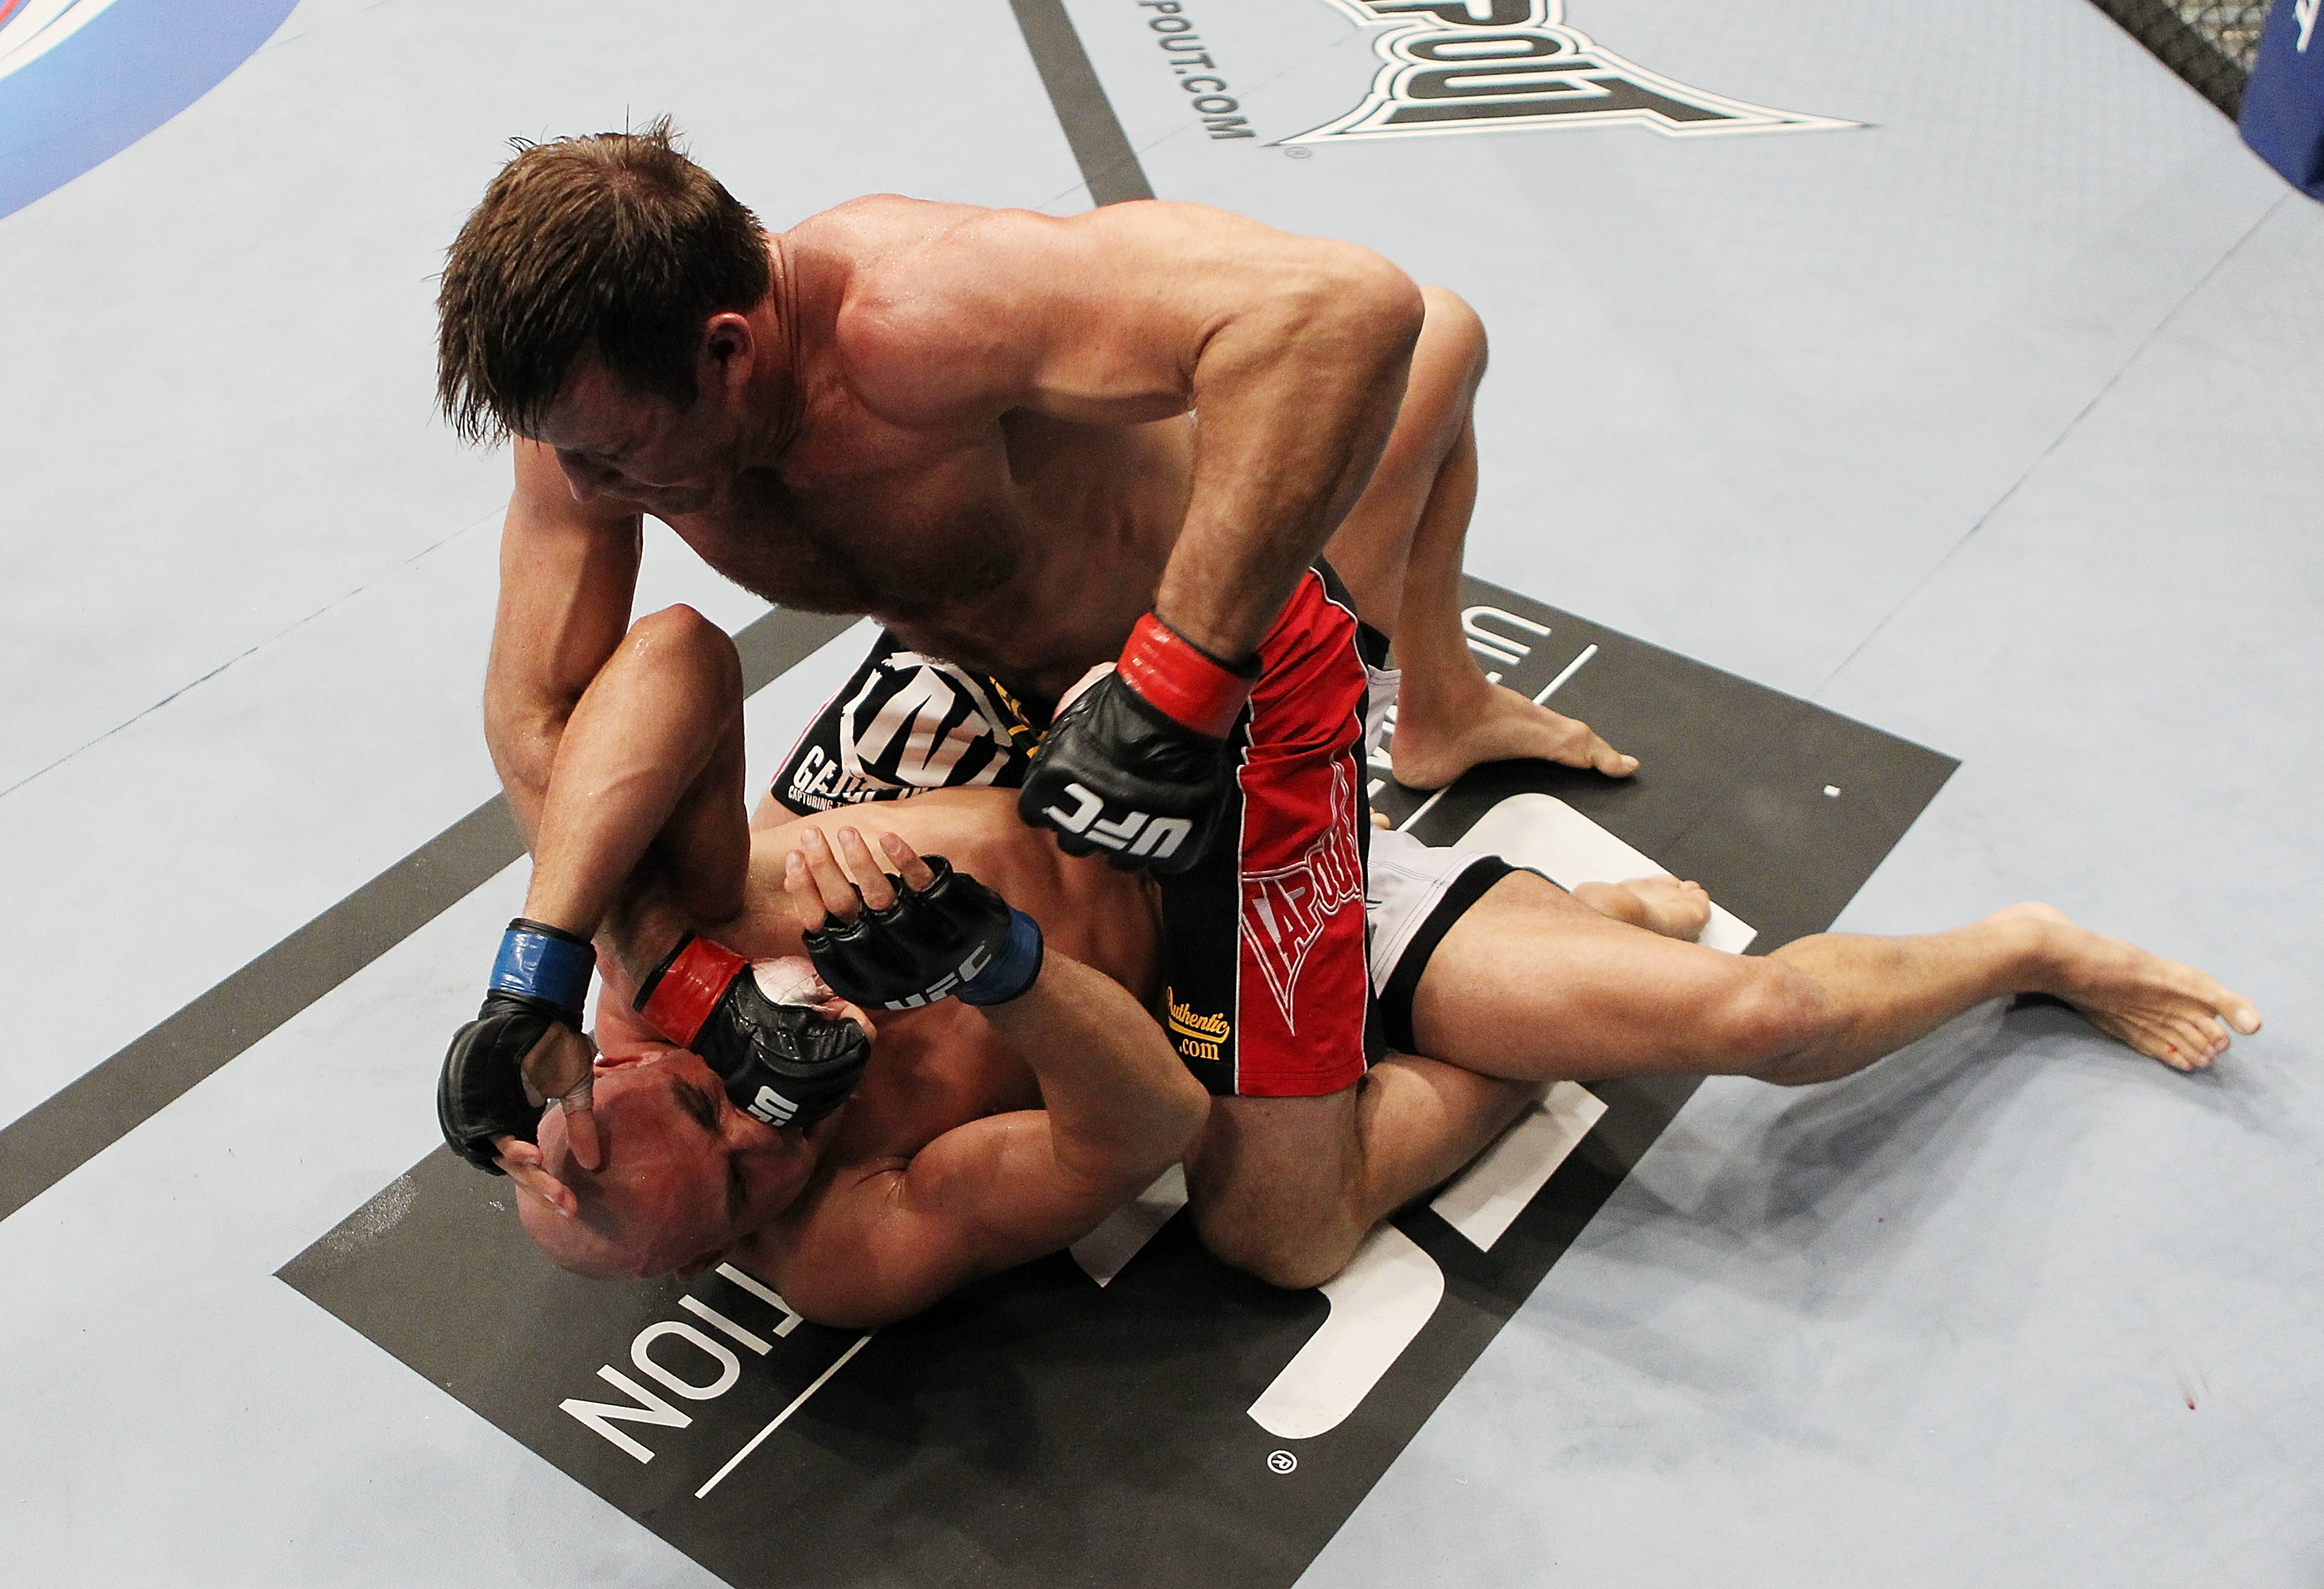 SAN JOSE, CA - NOVEMBER 19 Stephan Bonnar punches Kyle Kingsbury during an UFC Light Heavywieght bout at the HP Pavilion on November 19, 2011 in San Jose, California.  (Photo by Josh Hedges/Zuffa LLC/Zuffa LLC via Getty Images)